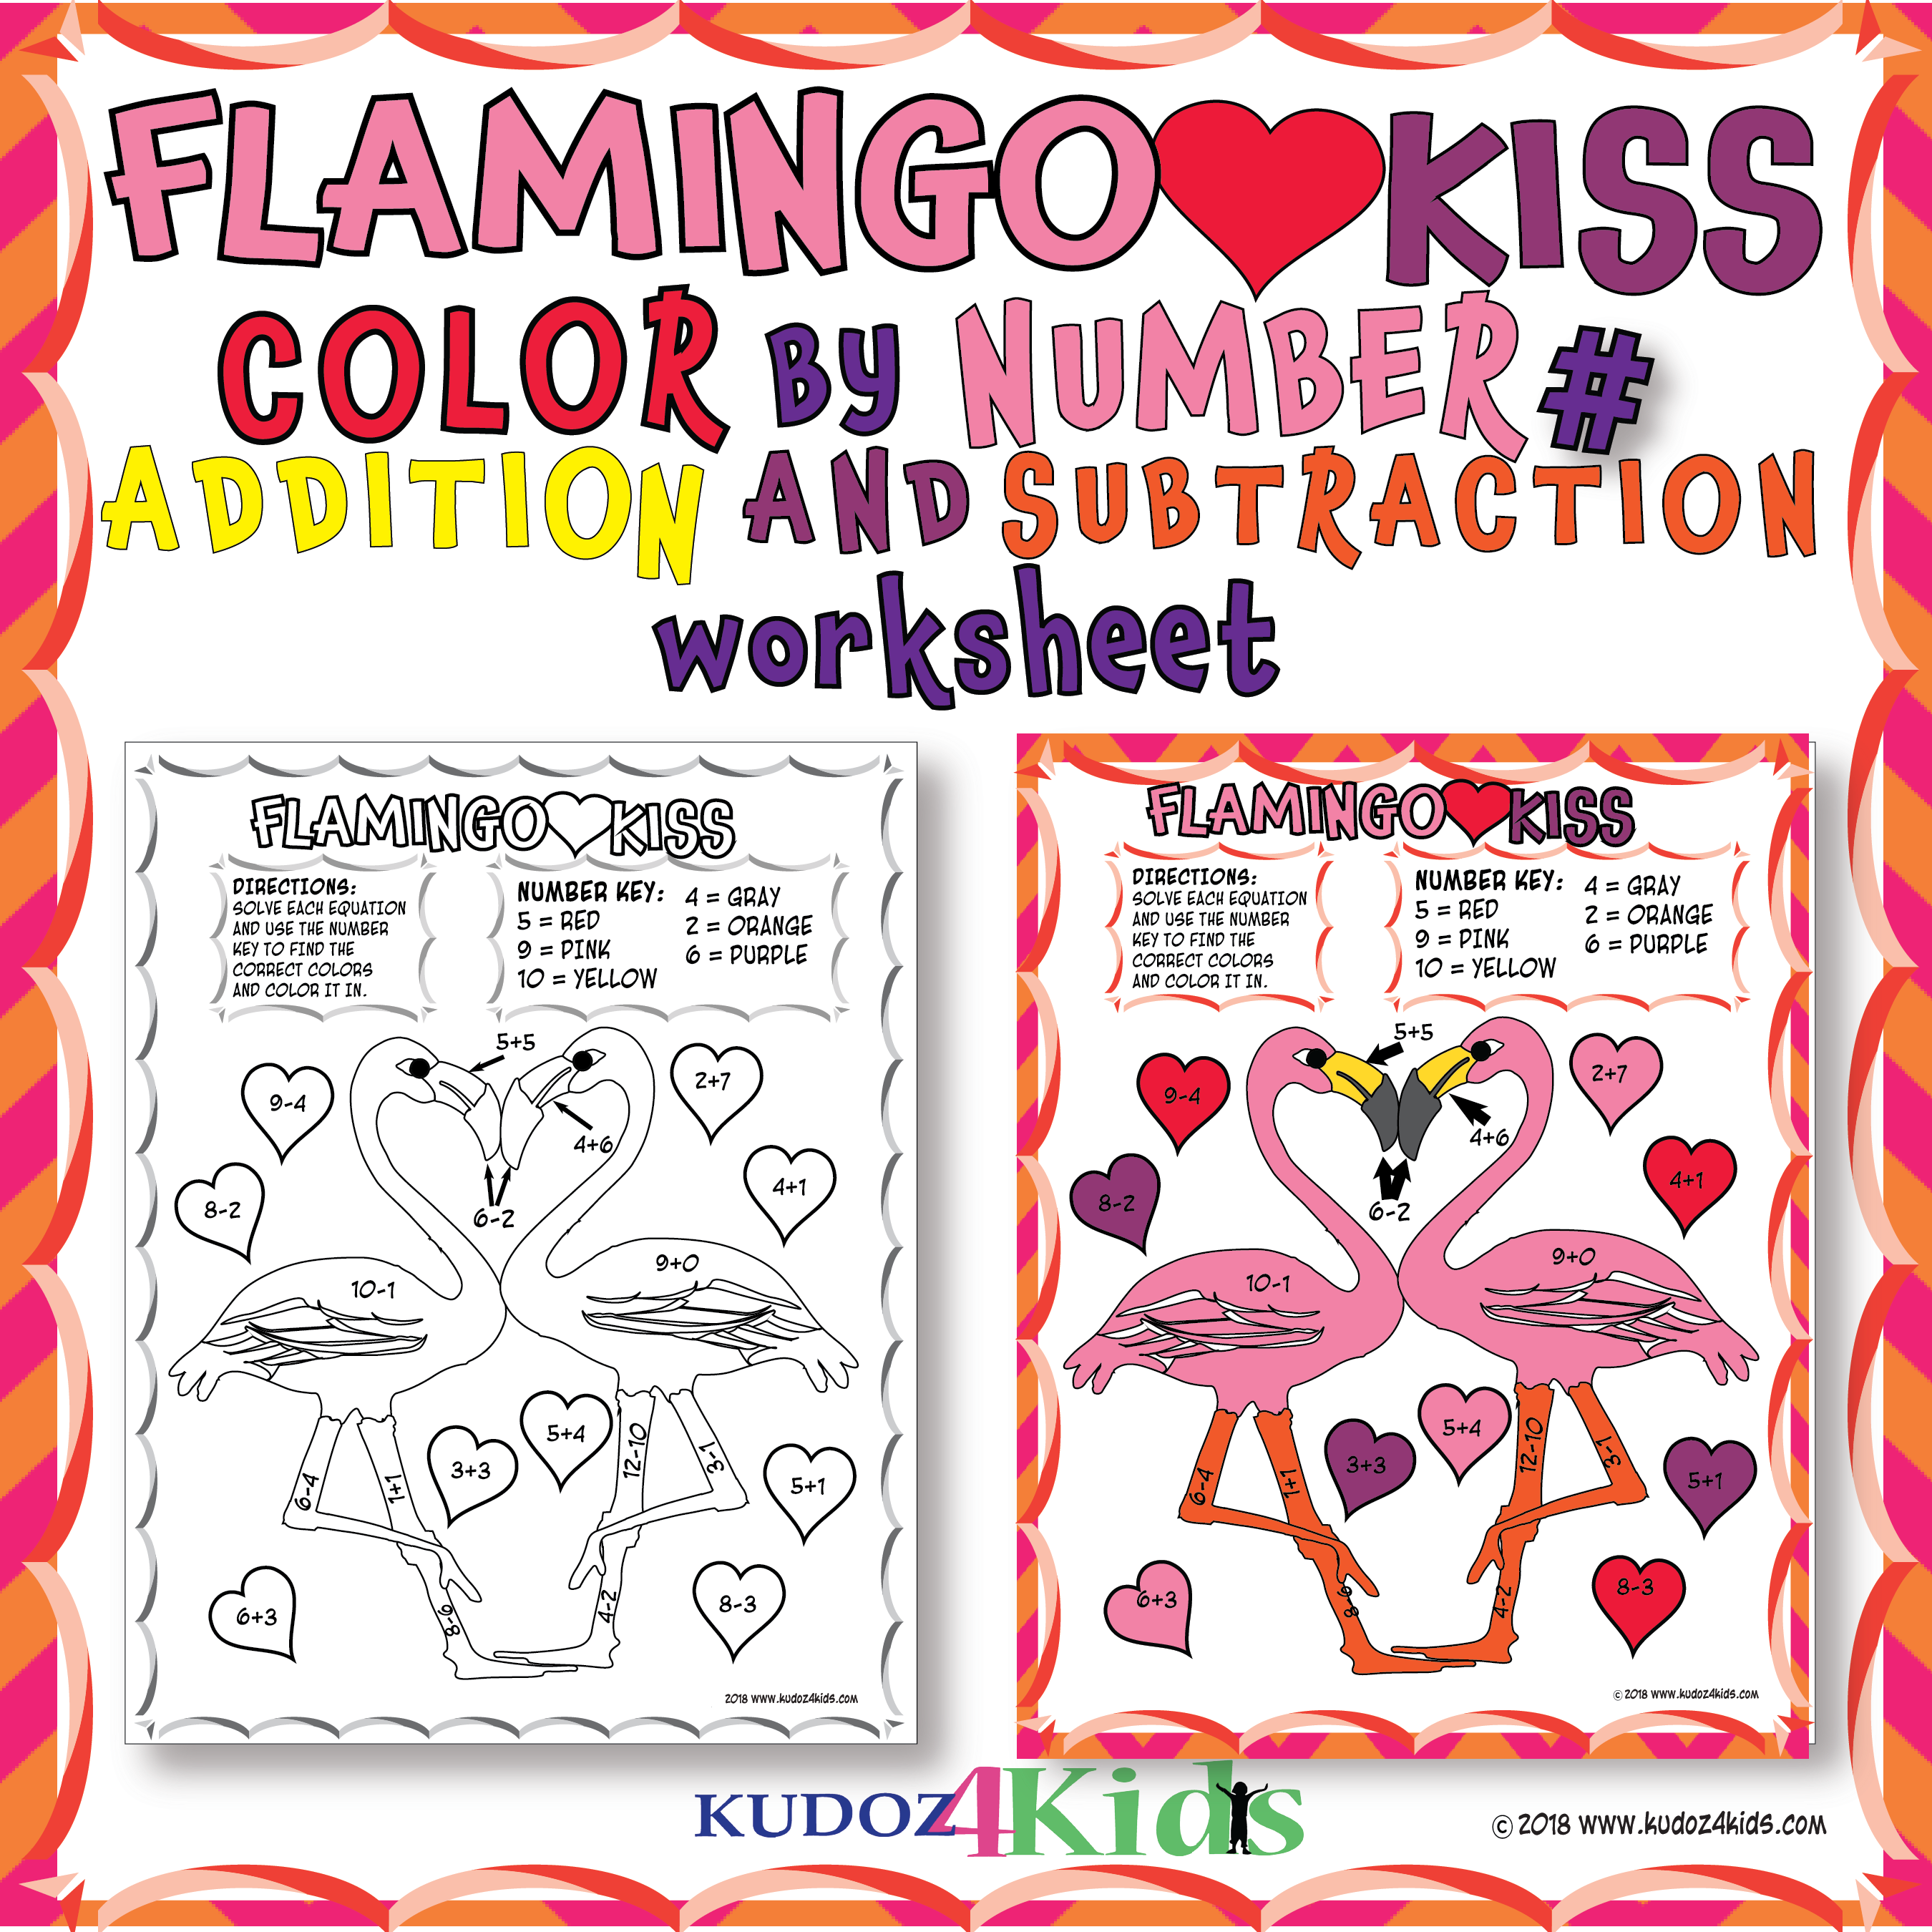 Flamingo Kiss Color By Number For Addition And